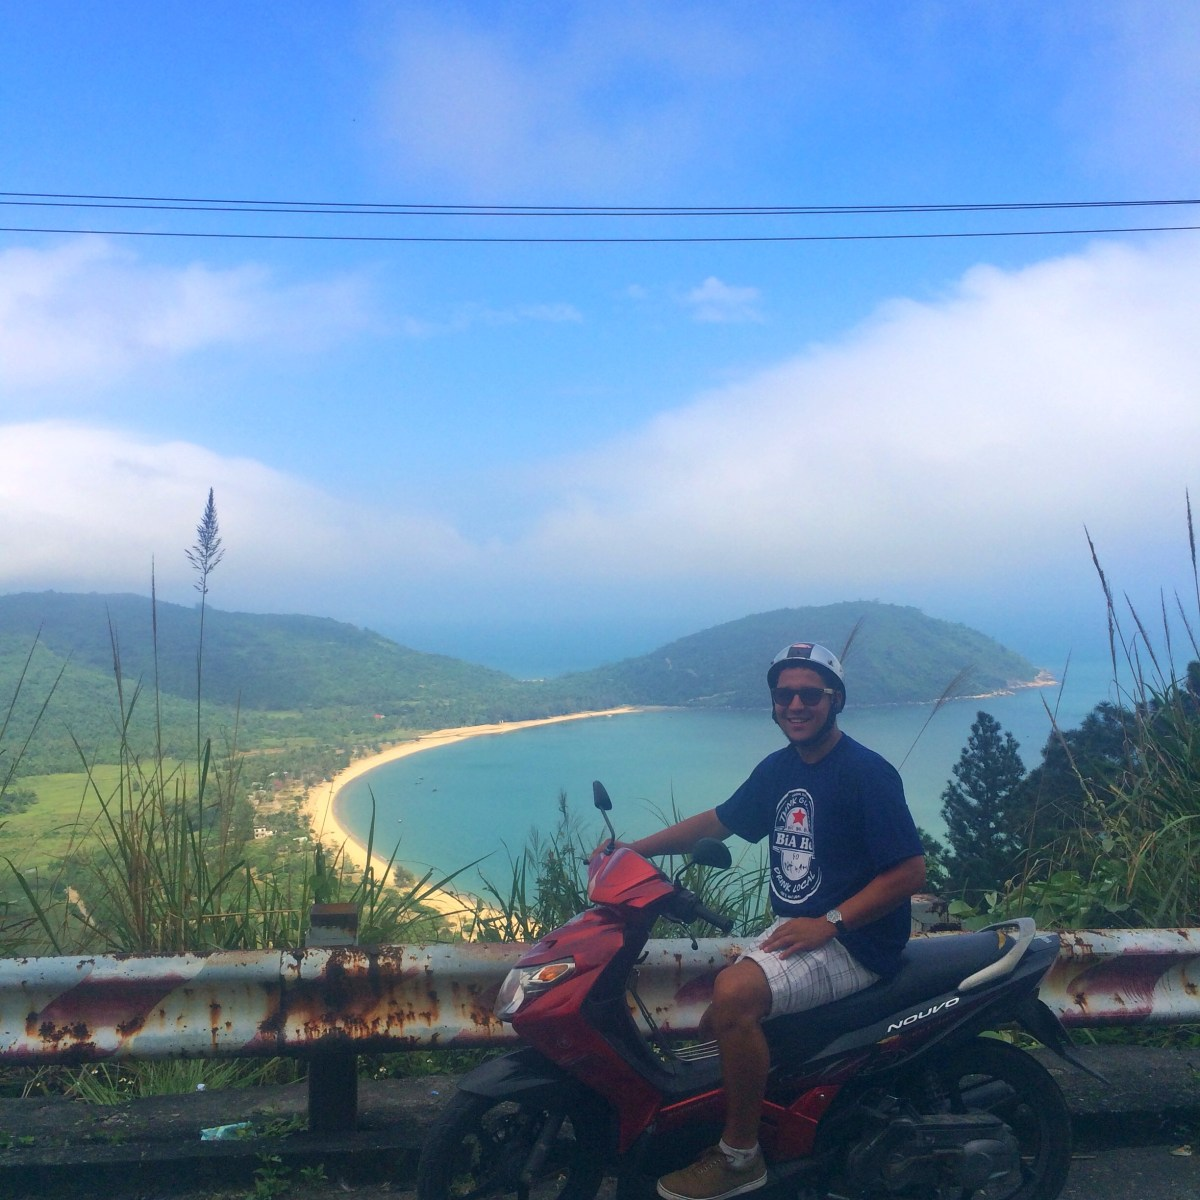 Hai Van Pass: A Day Exploring Vietnam by Motorbike